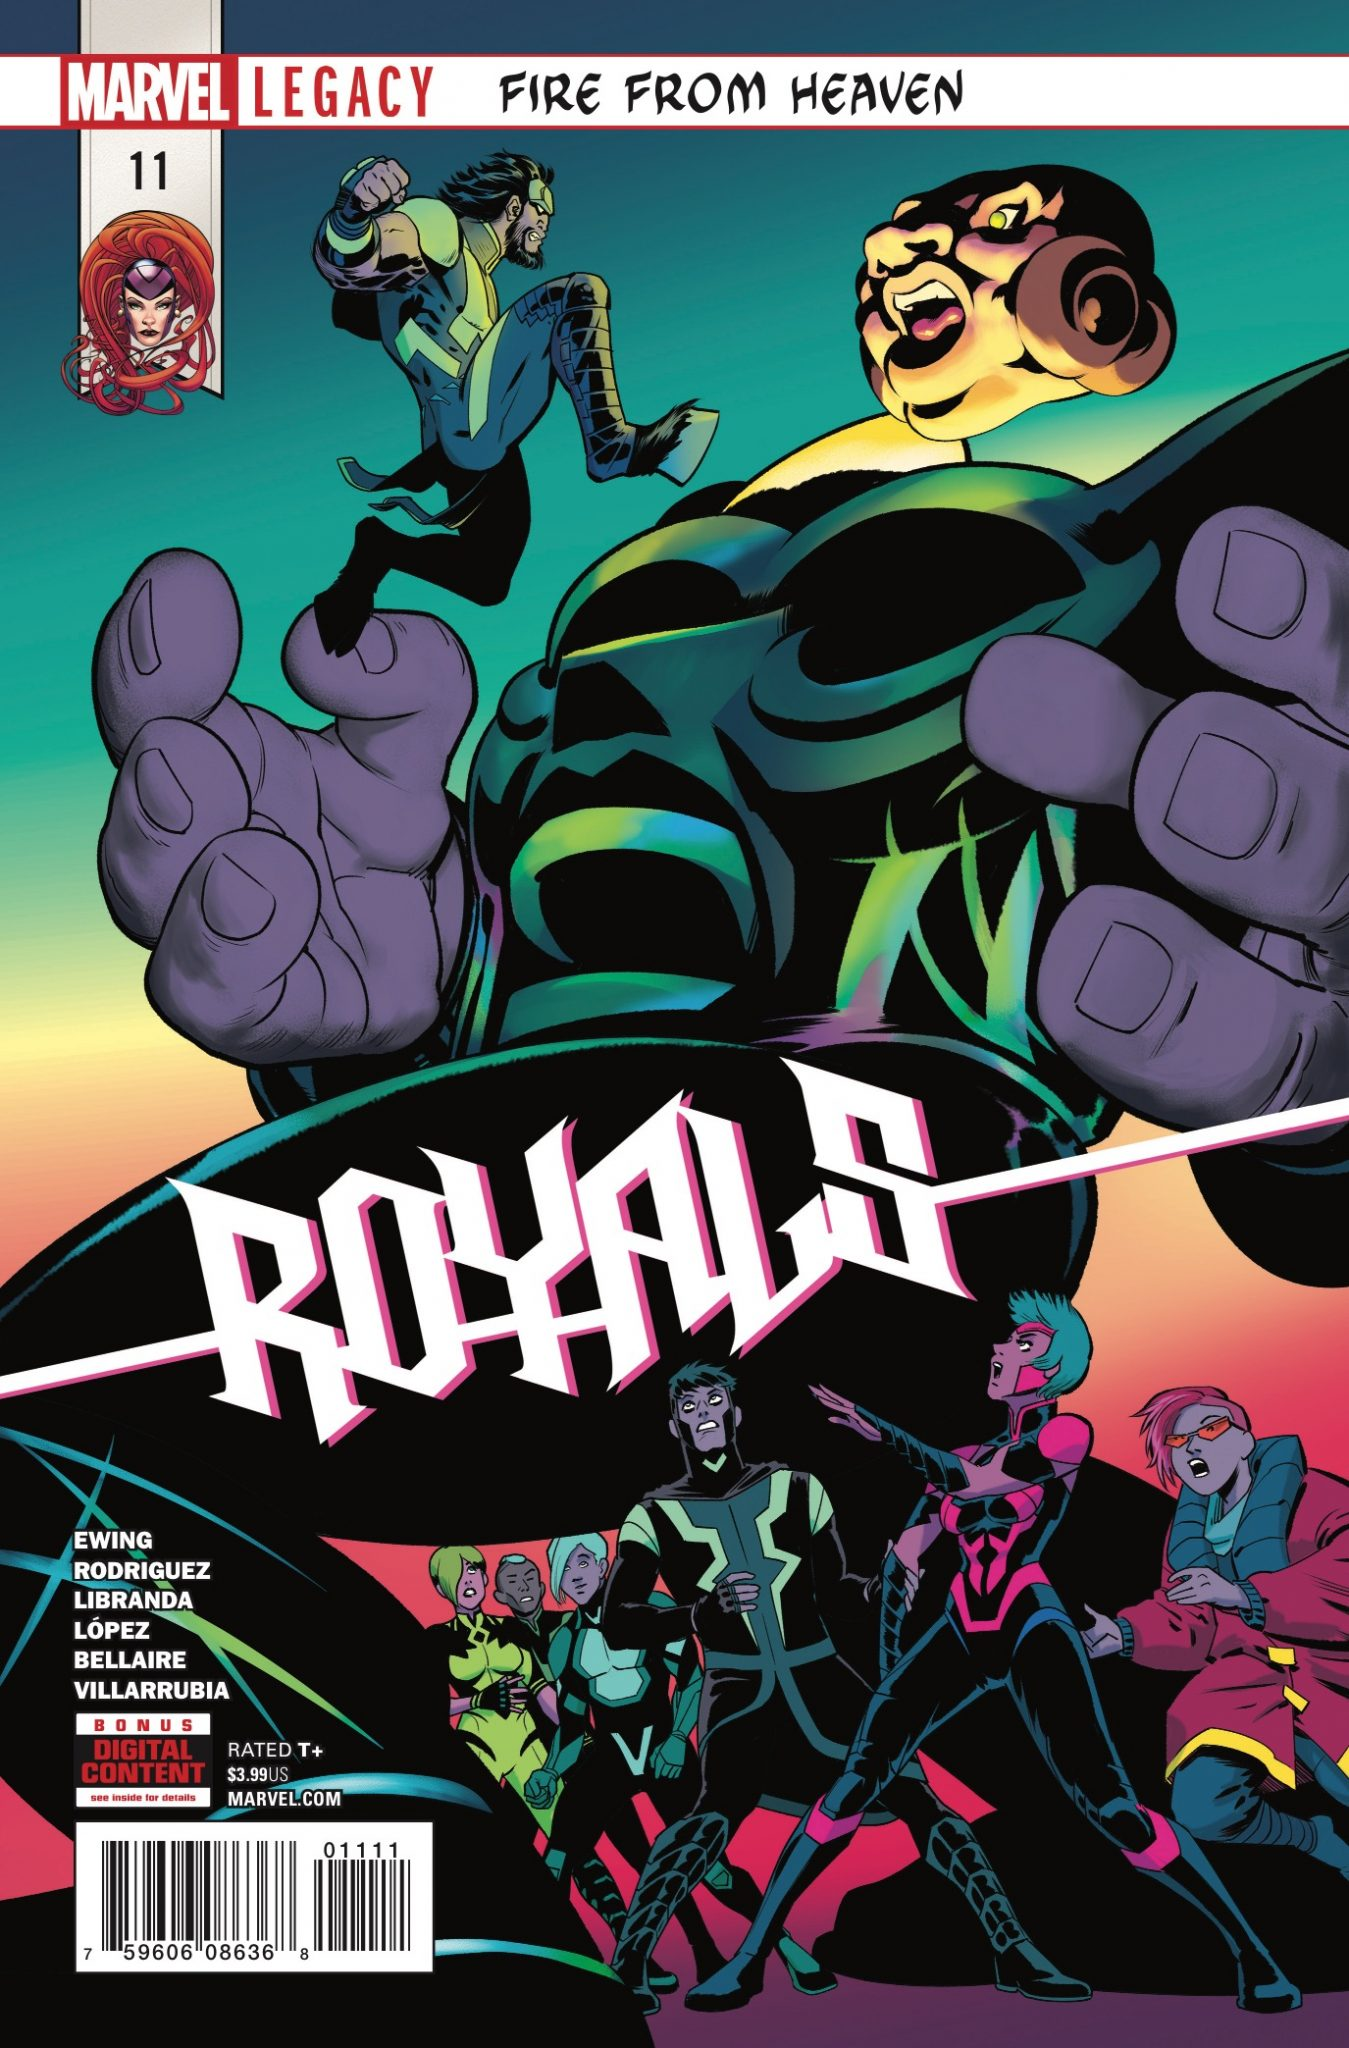 Marvel Preview: Royals #11